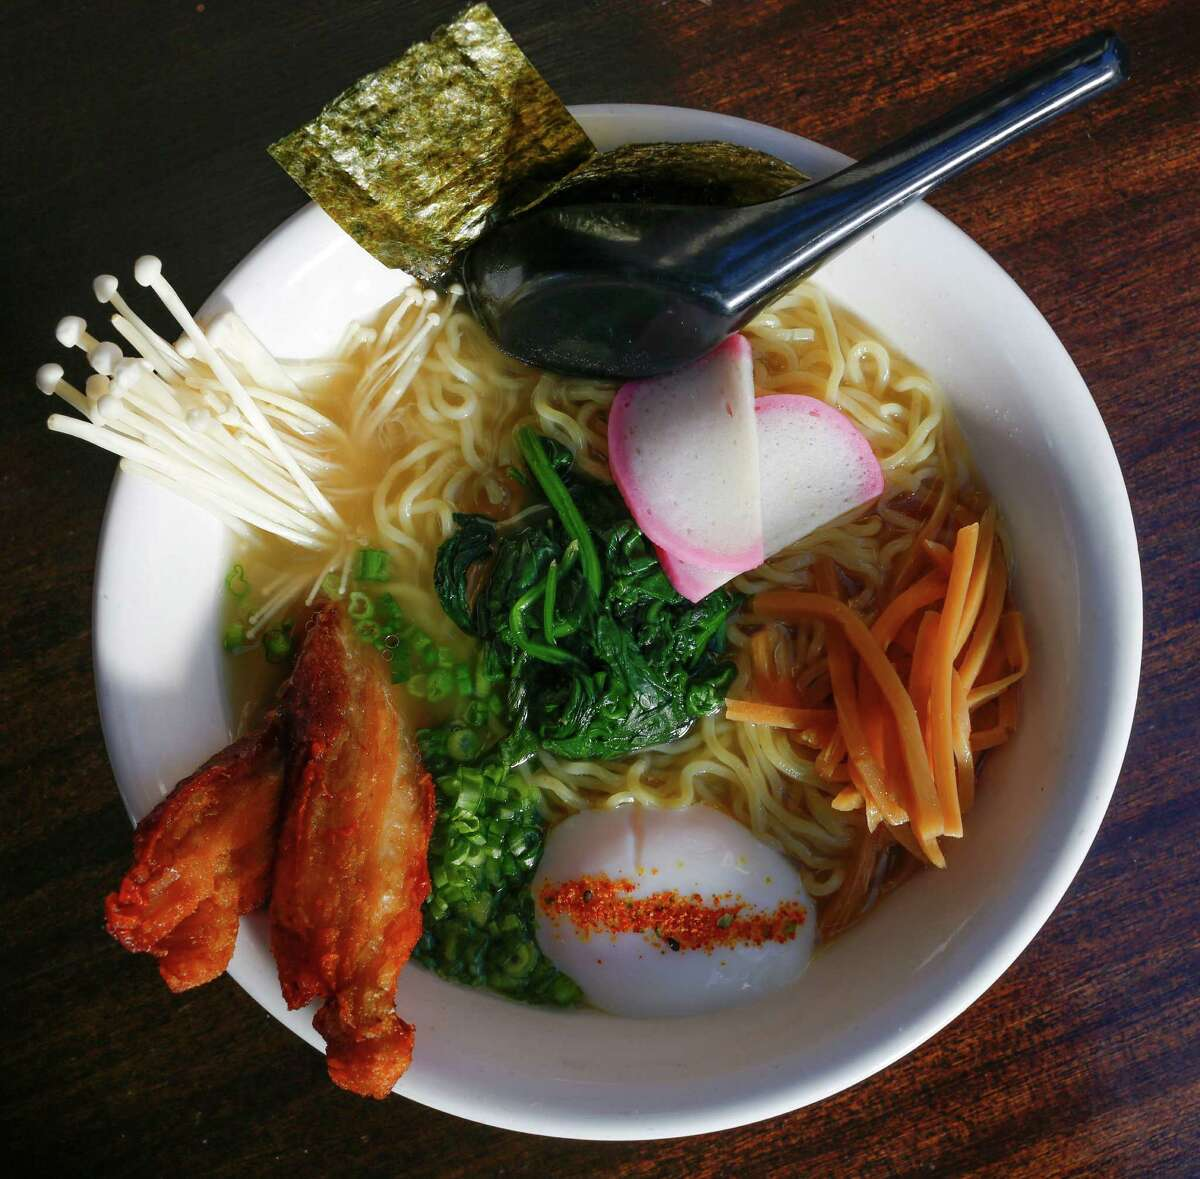 Ramen and artisan breads.2. Noodles and rice: Starches will make a comeback, according to Technomic, a food-industry consulting firm. The ramen craze for buckwheat noodles is fueling this return to carbs. Pasta made with unusual ingredients, rice bowls (embracing jasmine, basmati and brown rice) and artisan breads also contribute to the coming carb-a-rama.